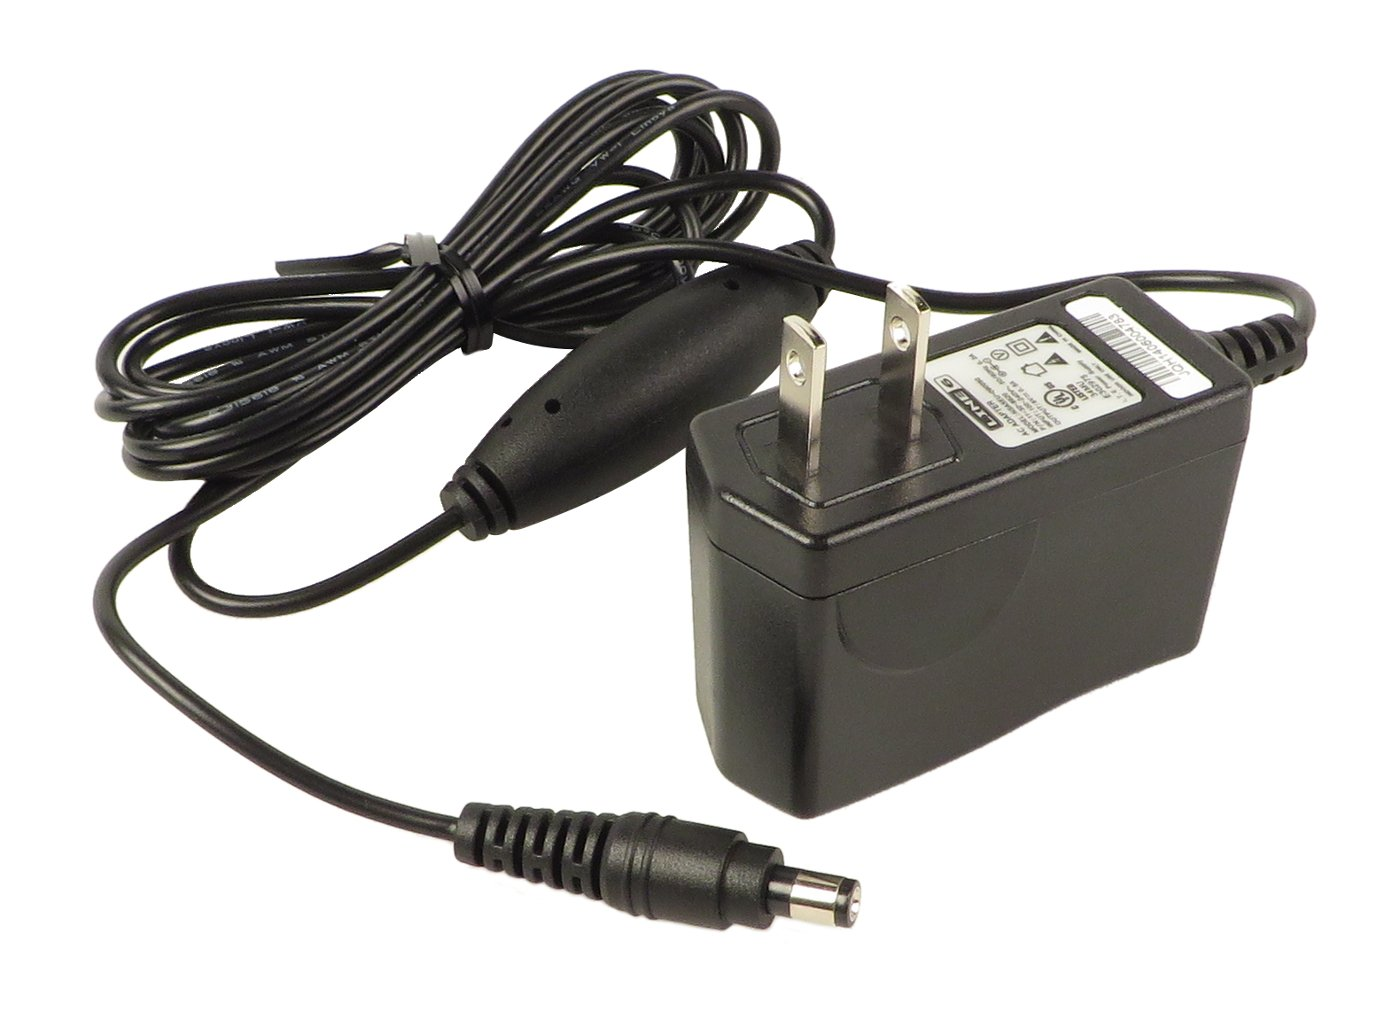 DC-1G AC Adaptor for G50 and G30